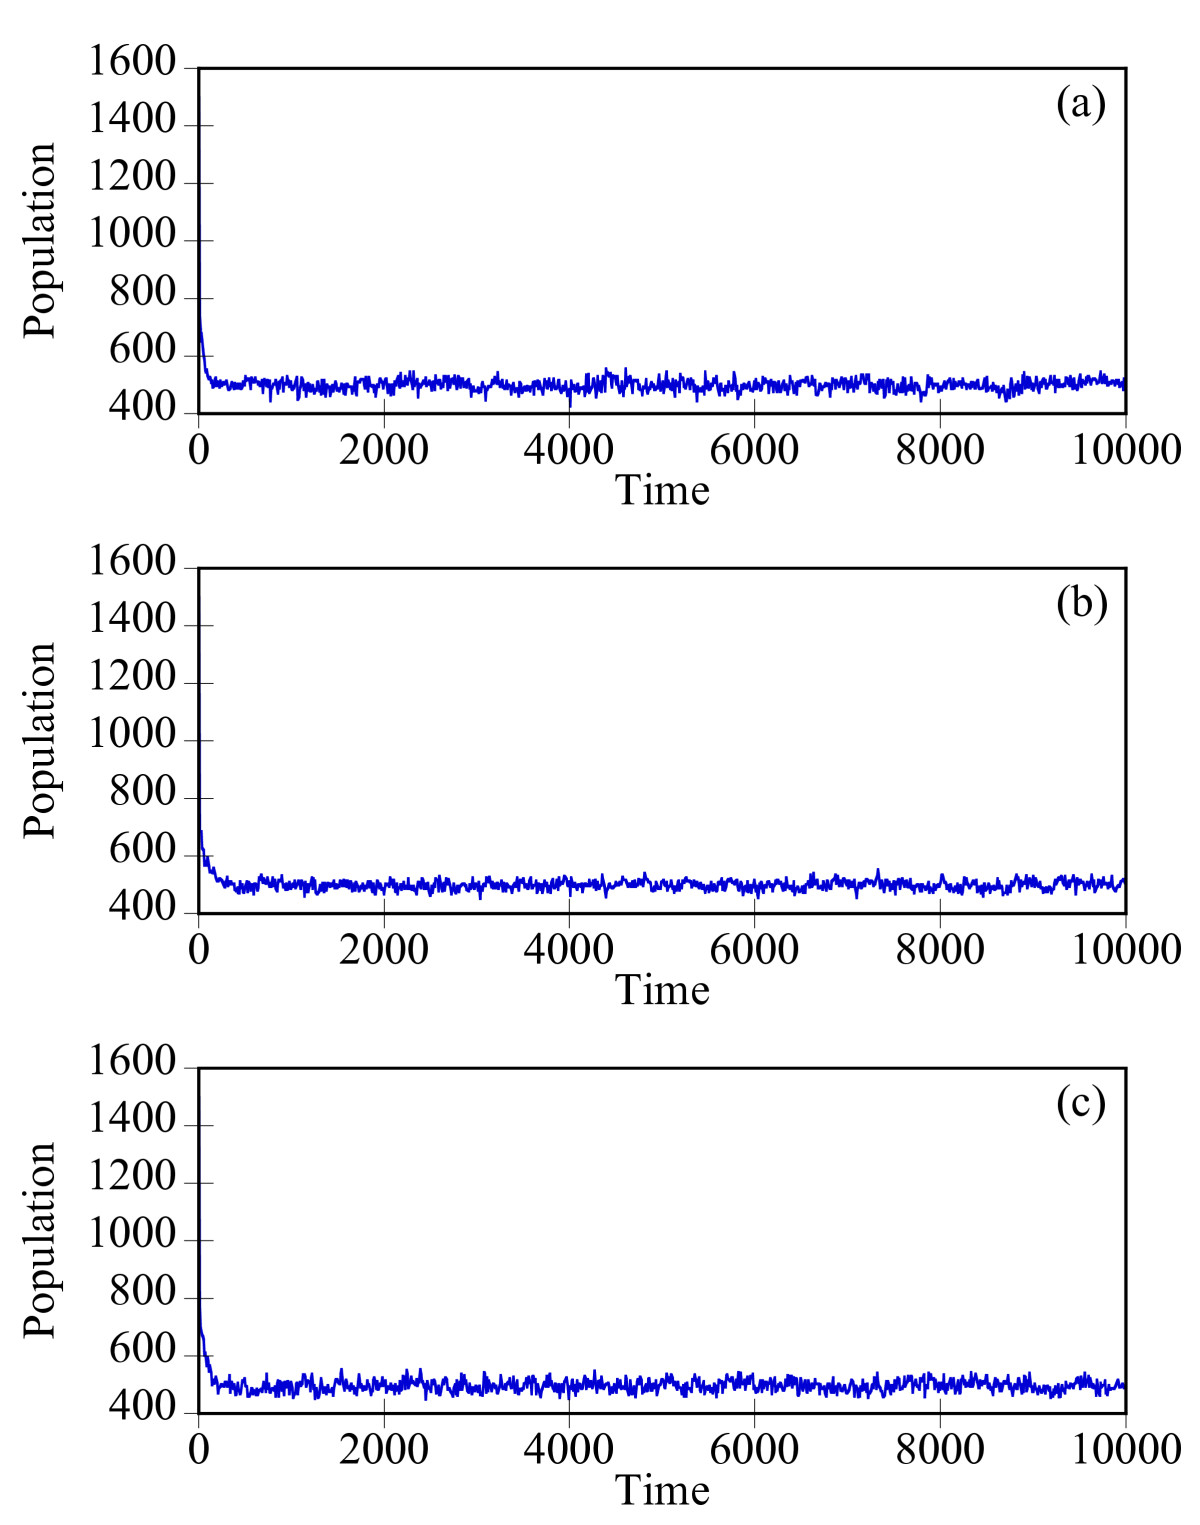 http://static-content.springer.com/image/art%3A10.1186%2F1471-2105-8-175/MediaObjects/12859_2007_Article_1547_Fig3_HTML.jpg